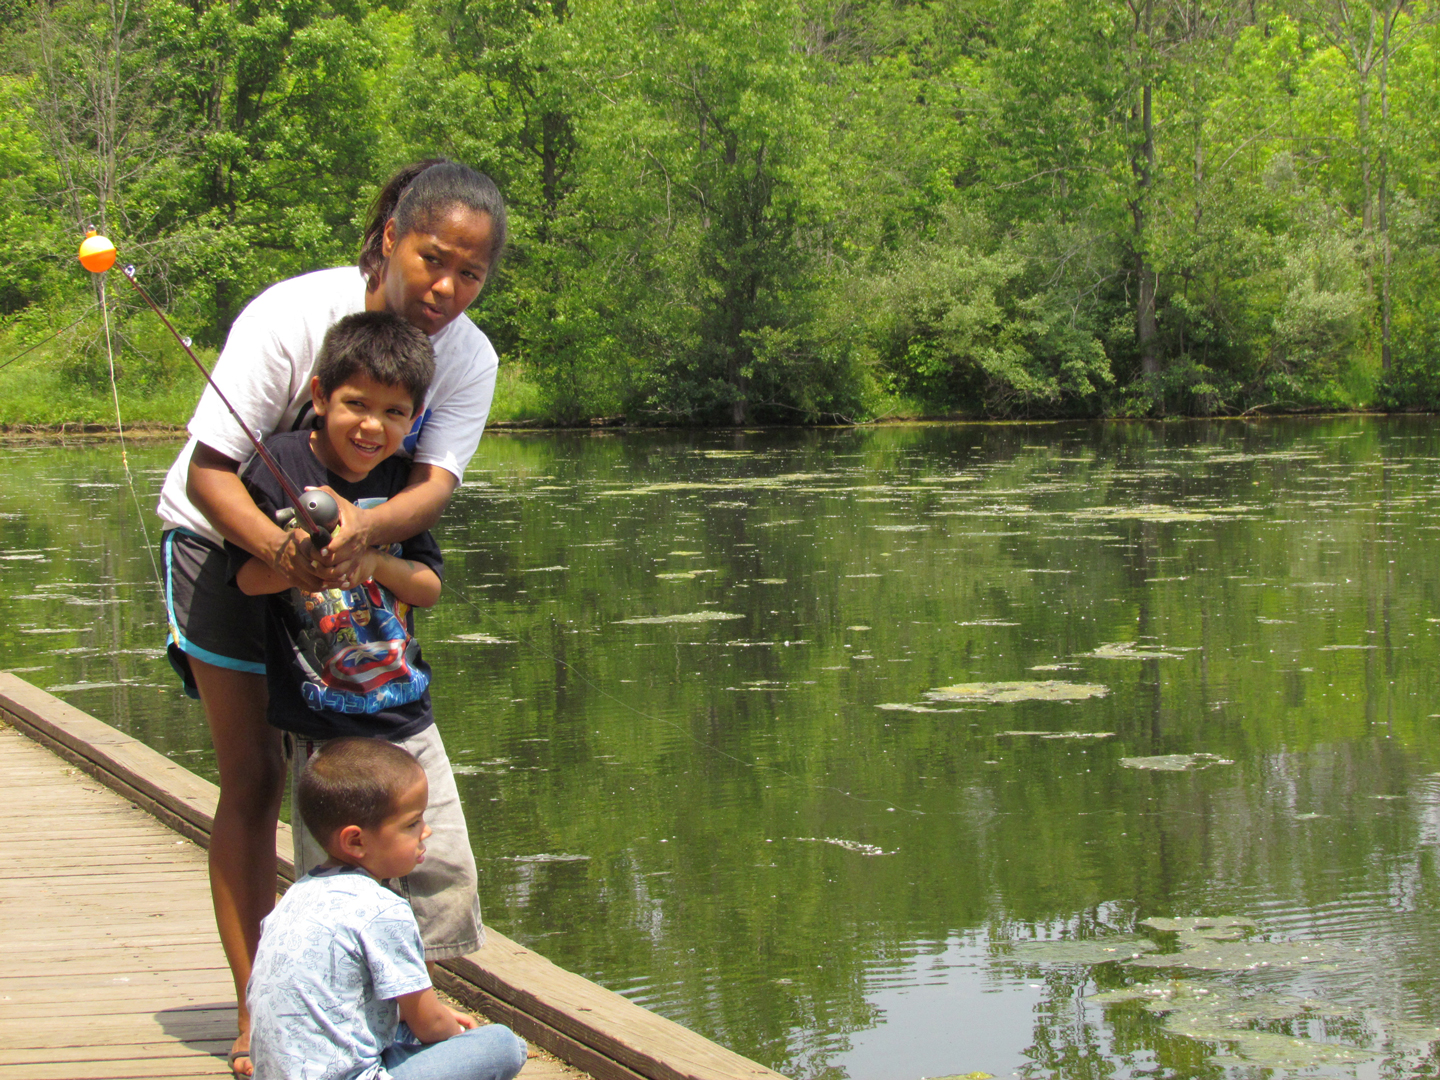 Adult helps young boy cast a fishing line into Schrock Lake at Sharon Woods Metro Park